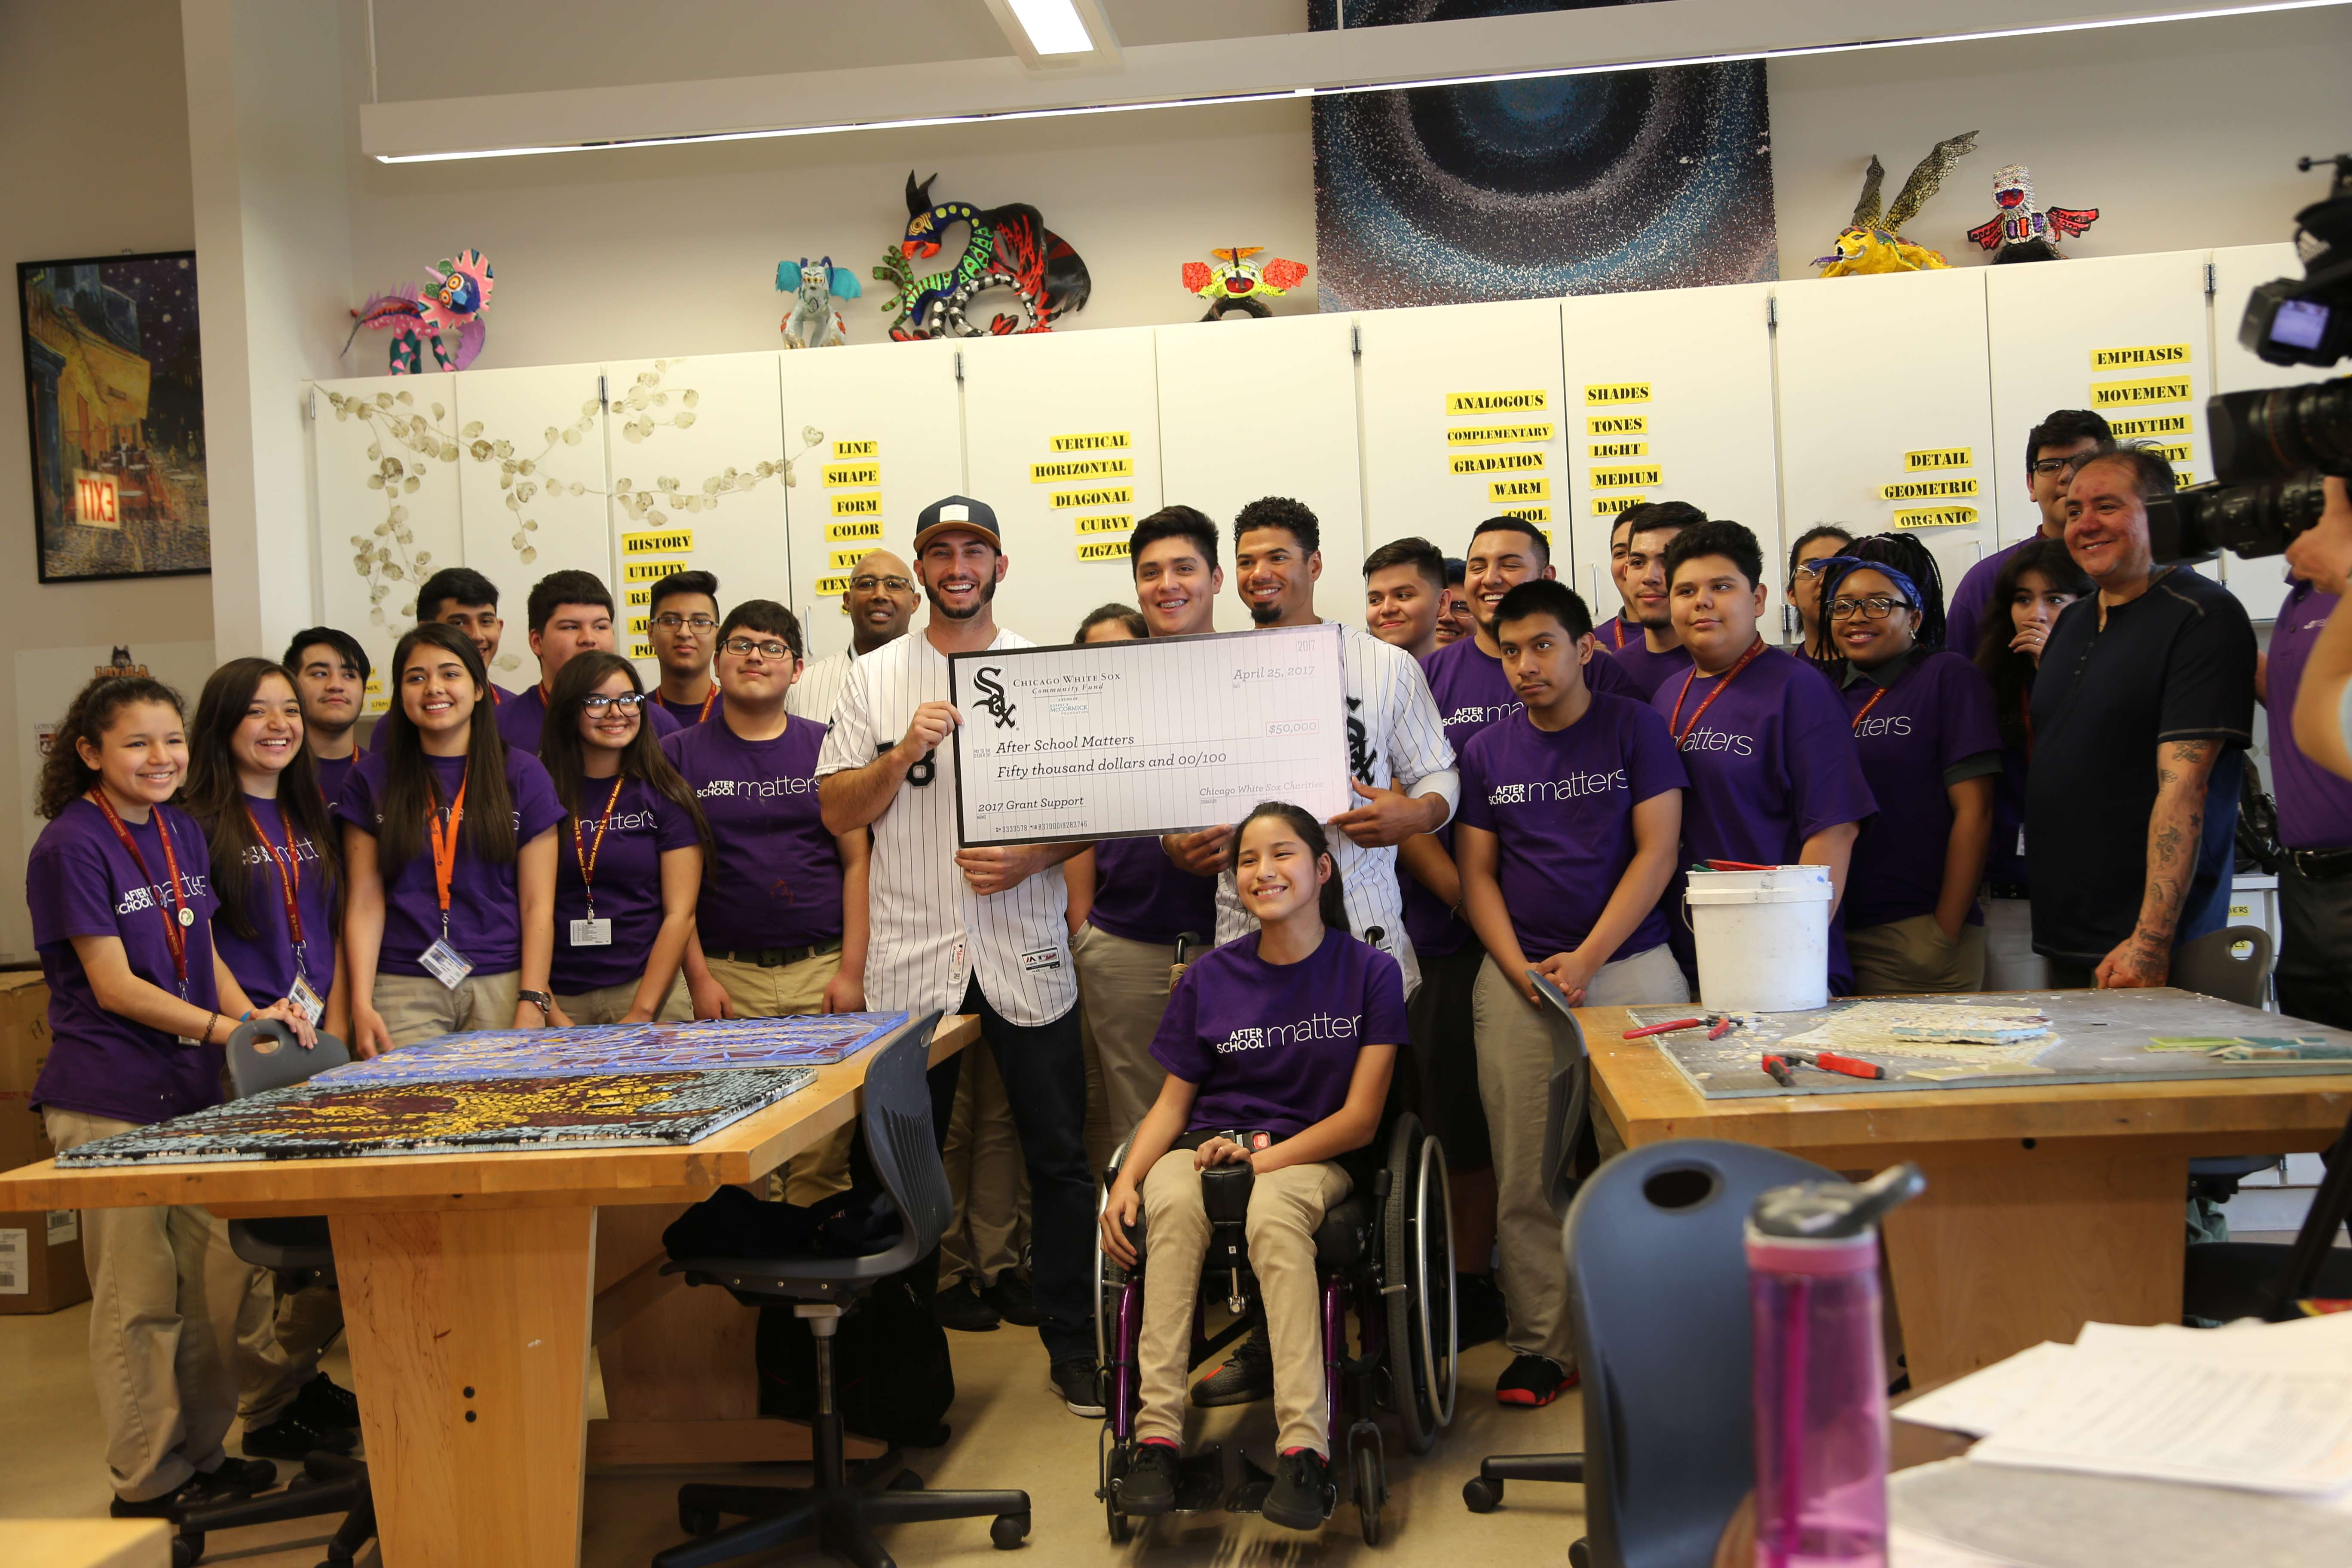 Chicago White Sox Charities presented a $50,000 grant to After School Matters.